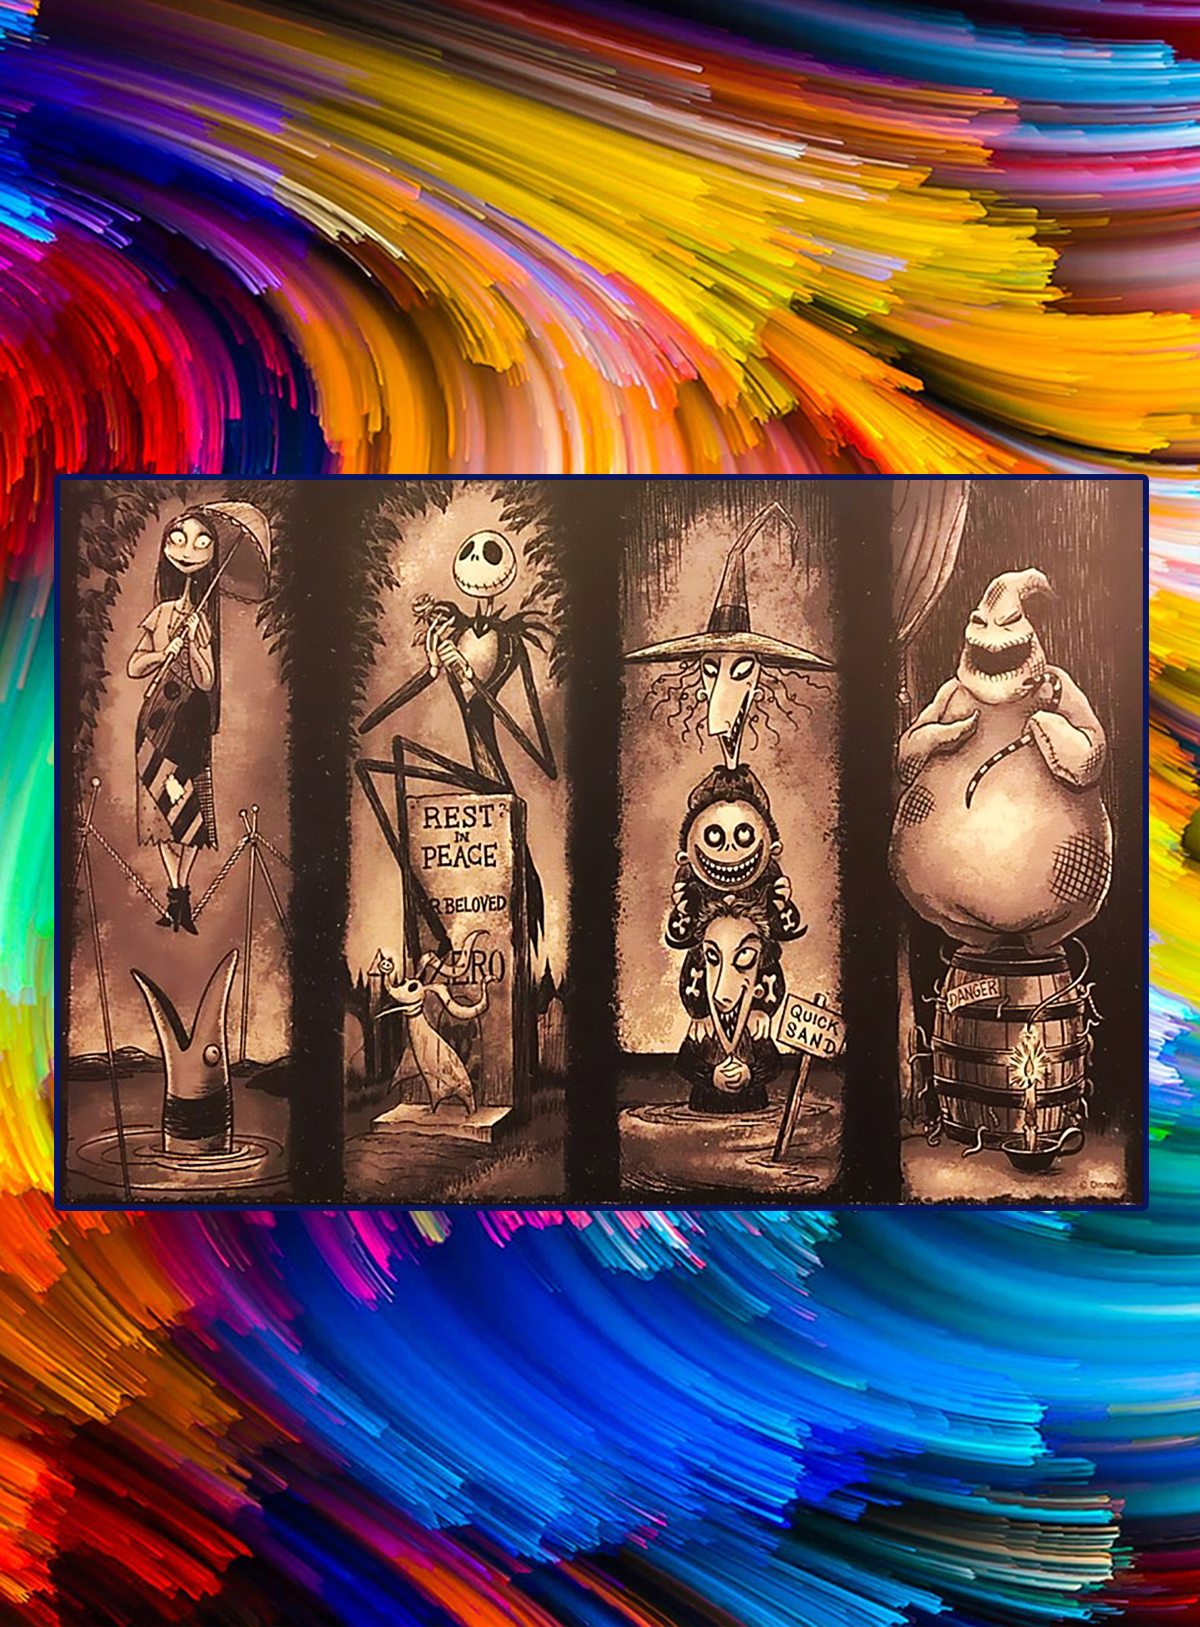 Nightmare before christmas stretching room poster - A4